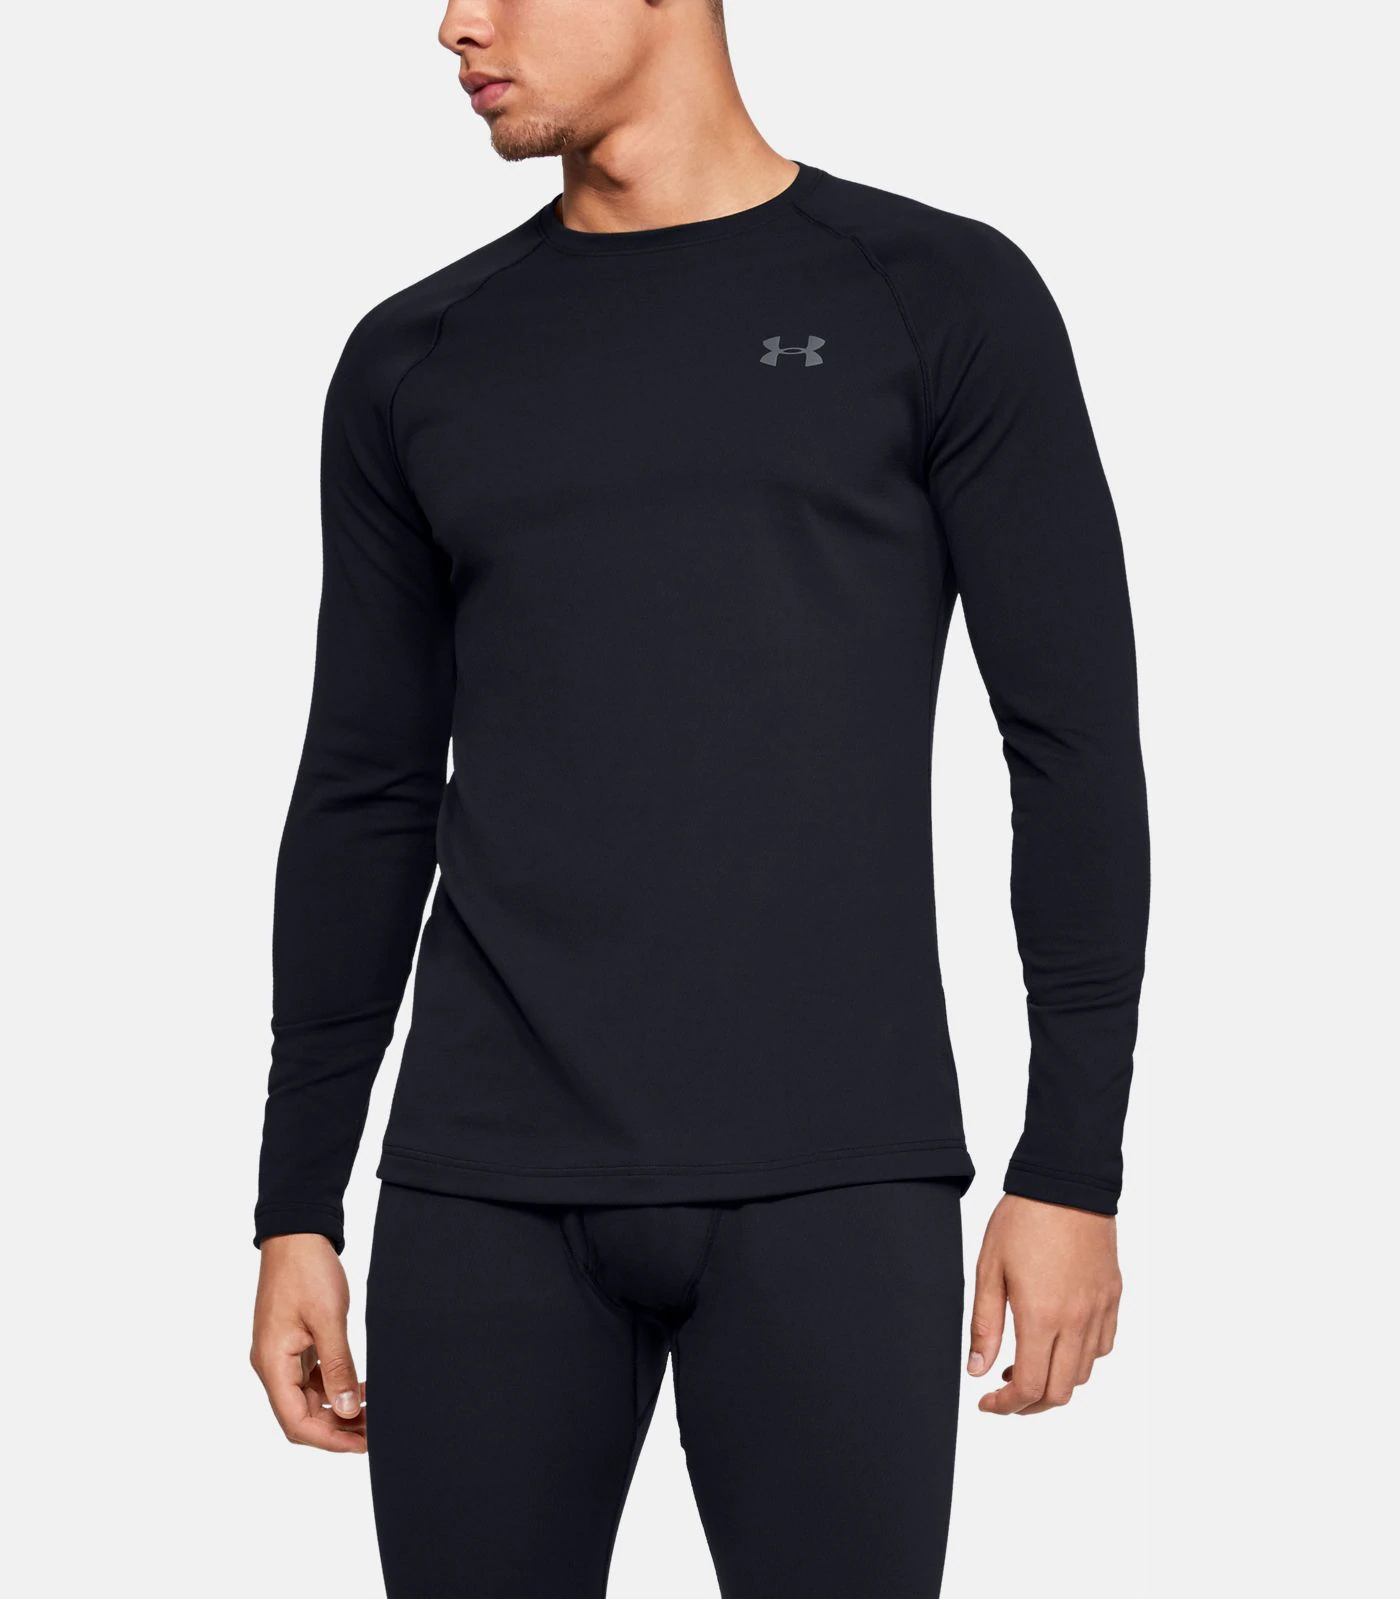 MENS_BASE-LAYERS-2_LS_UAR1343244001_01